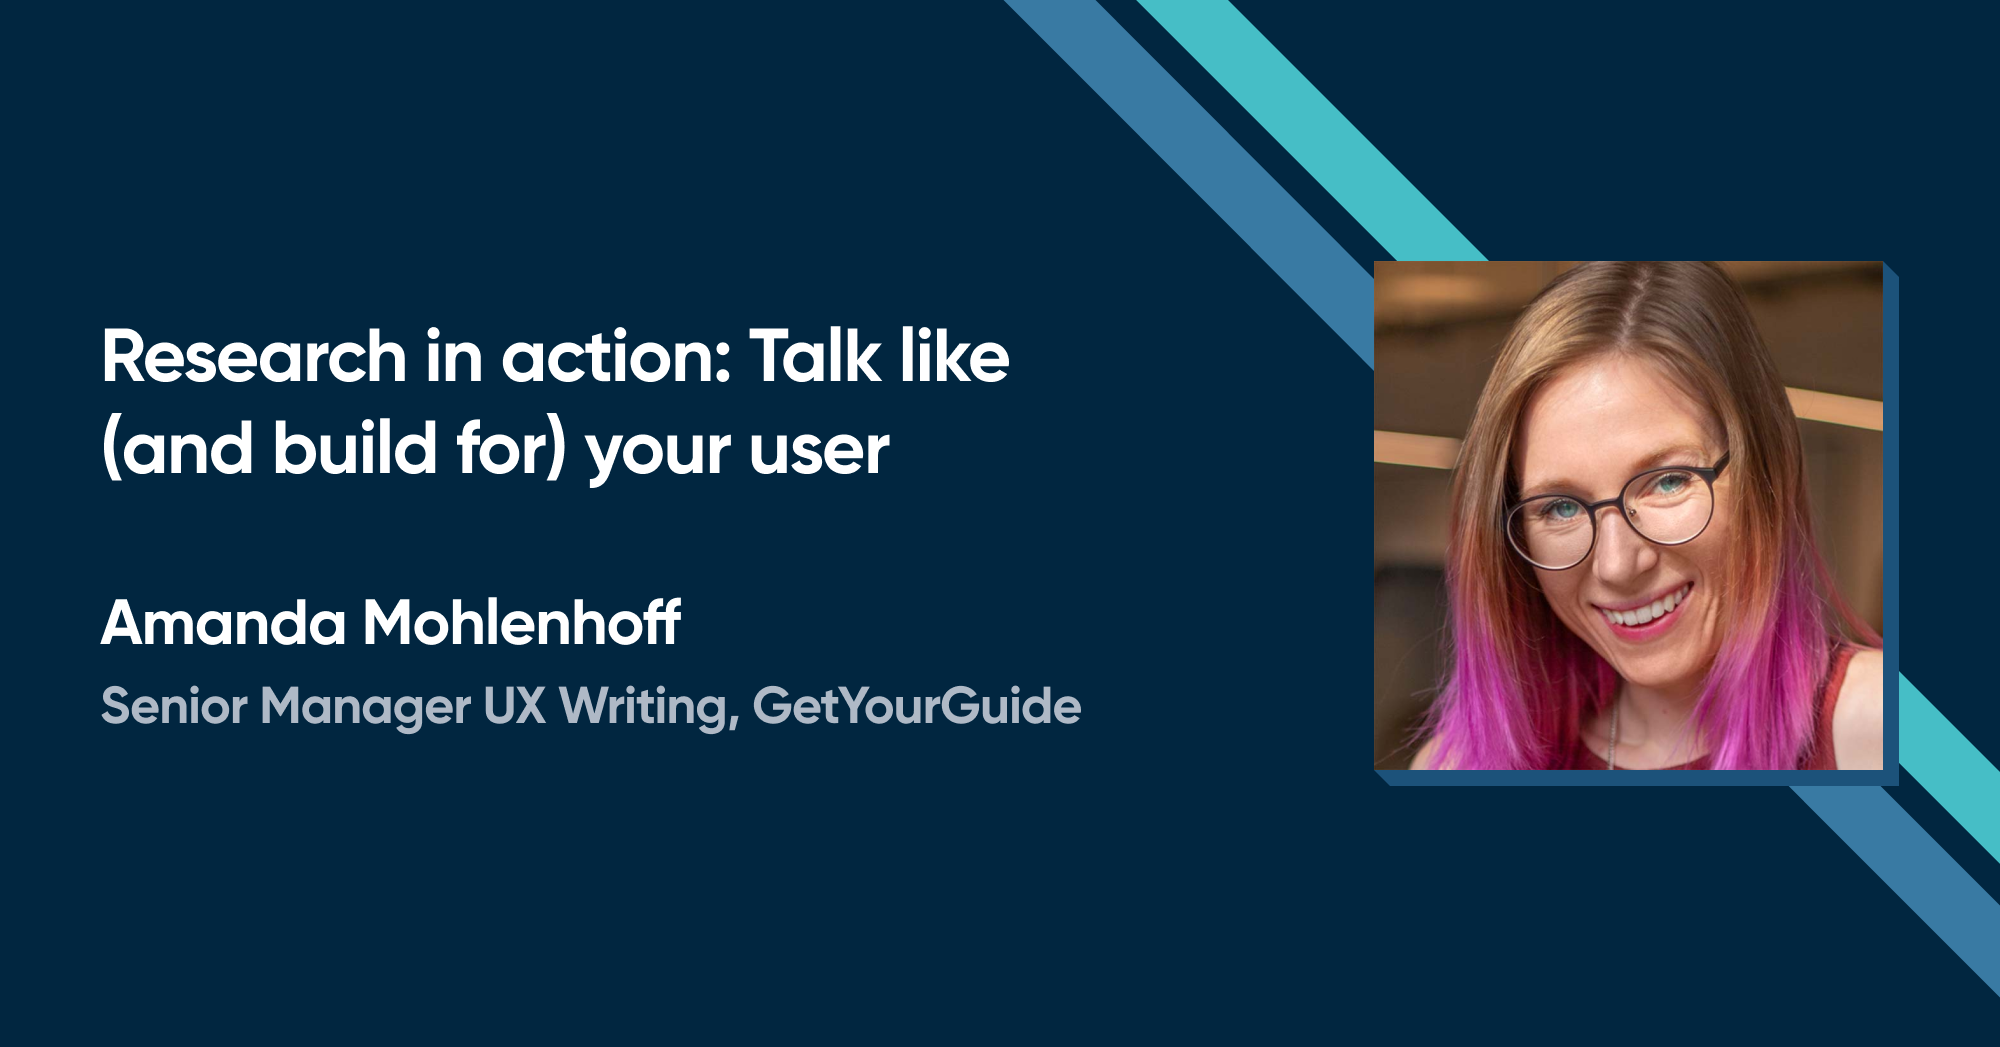 Amanda Mohlenhoff - Research in action: Talk like (and build for) your user